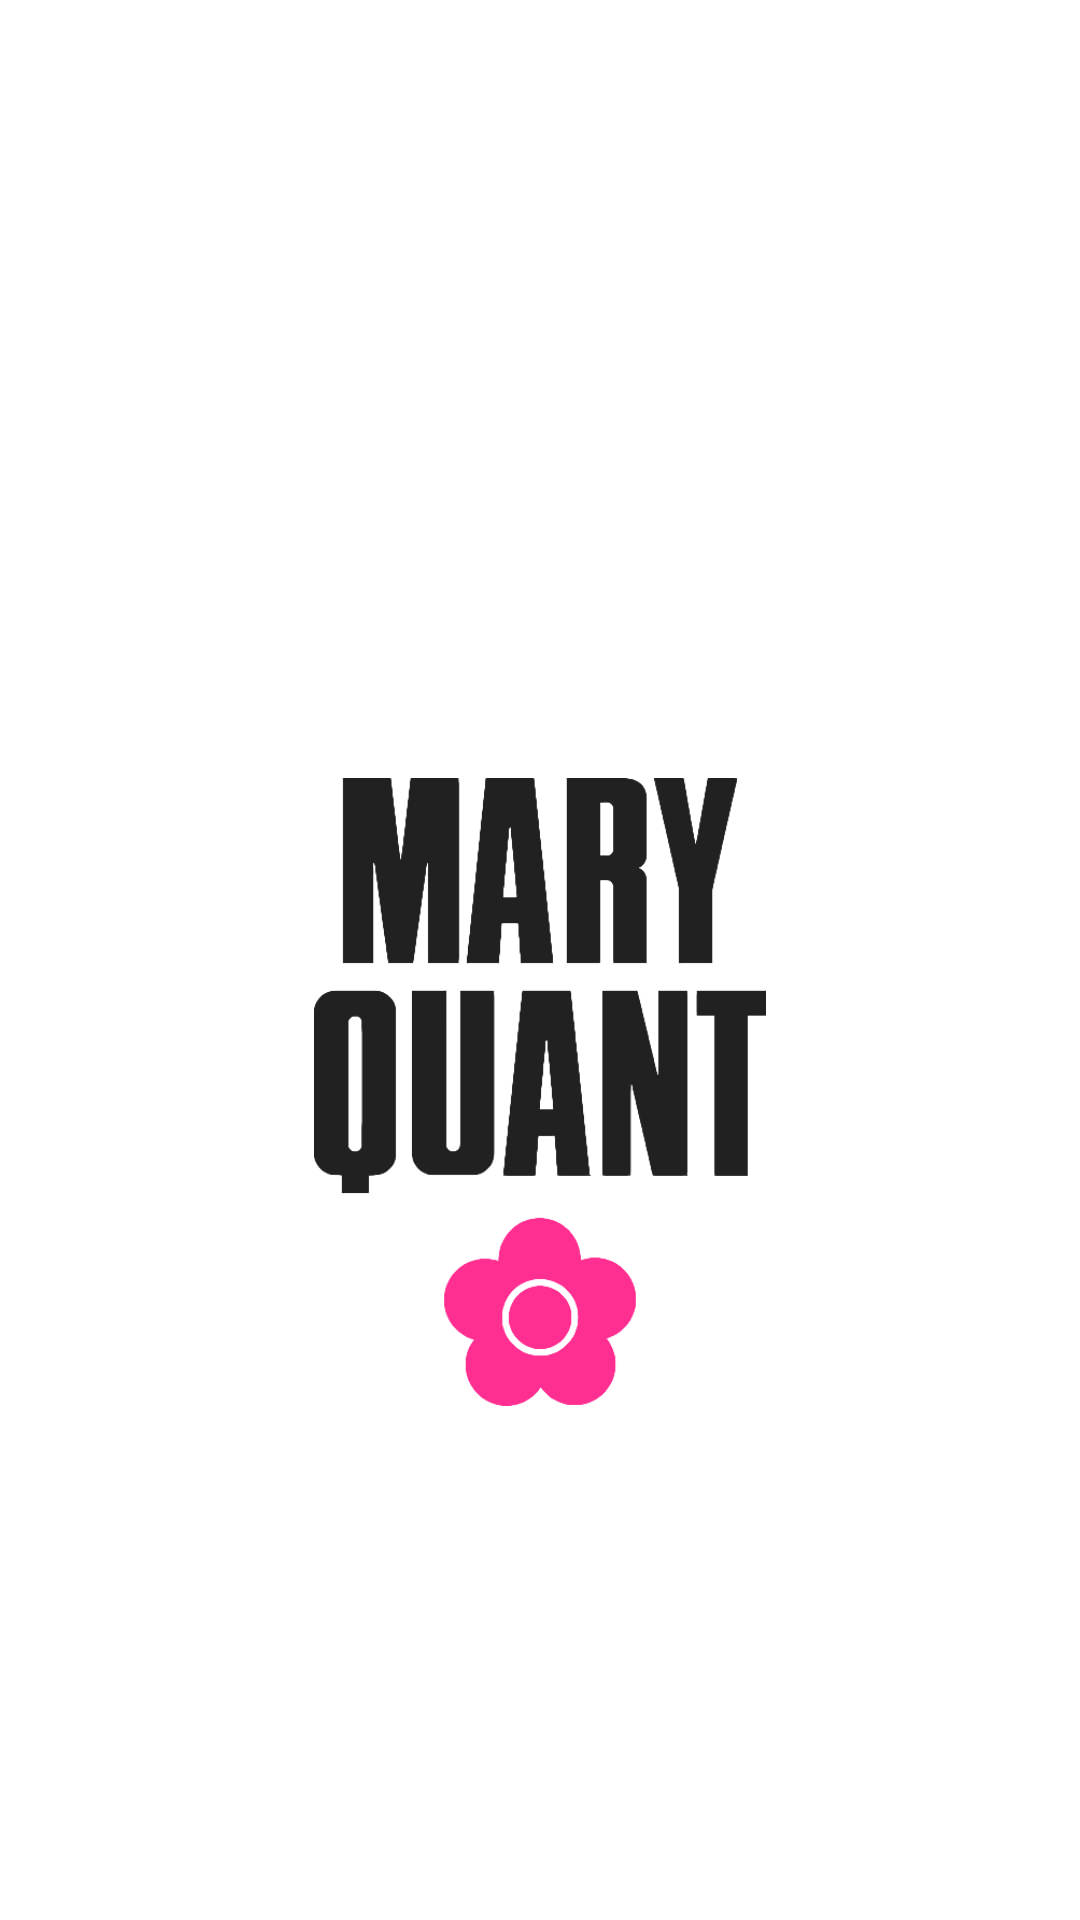 maryquant i16 - 20 MARY QUANT HQ Smartphone Wallpaper Collection